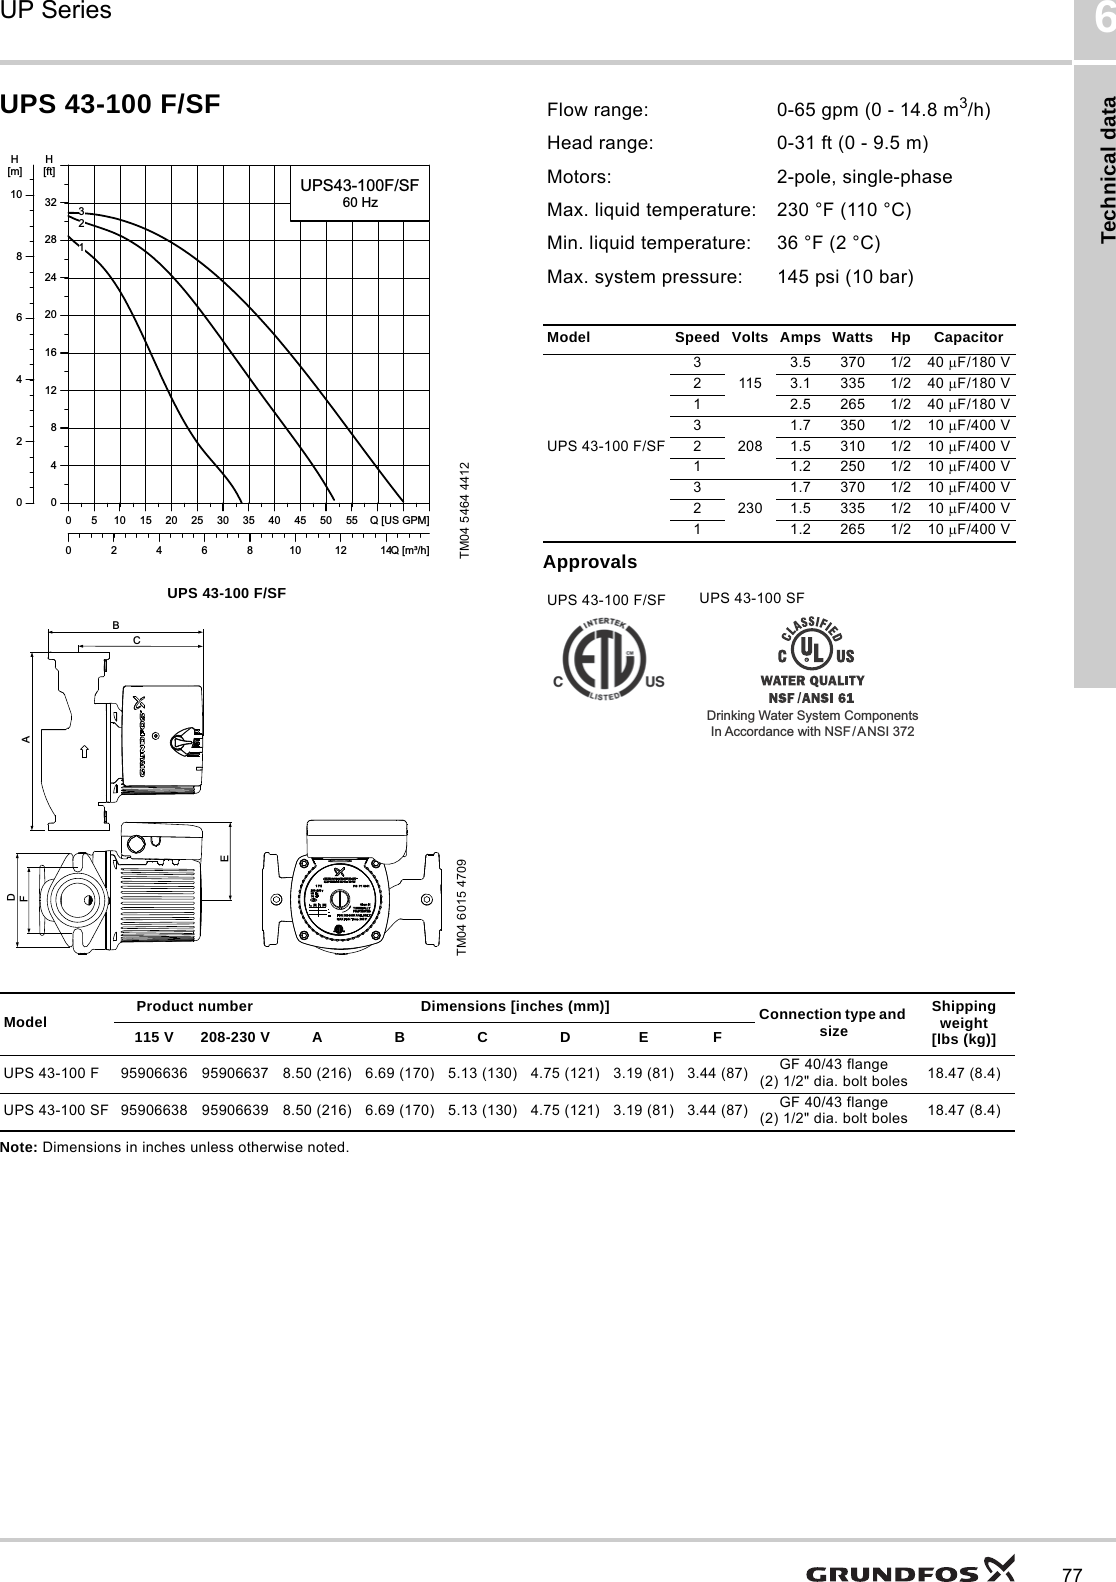 5373222GrundfosUpSeriesOwnersManual.222602257 User Guide Page 77 fancy 110 volt motor wiring diagram component diagram wiring ideas